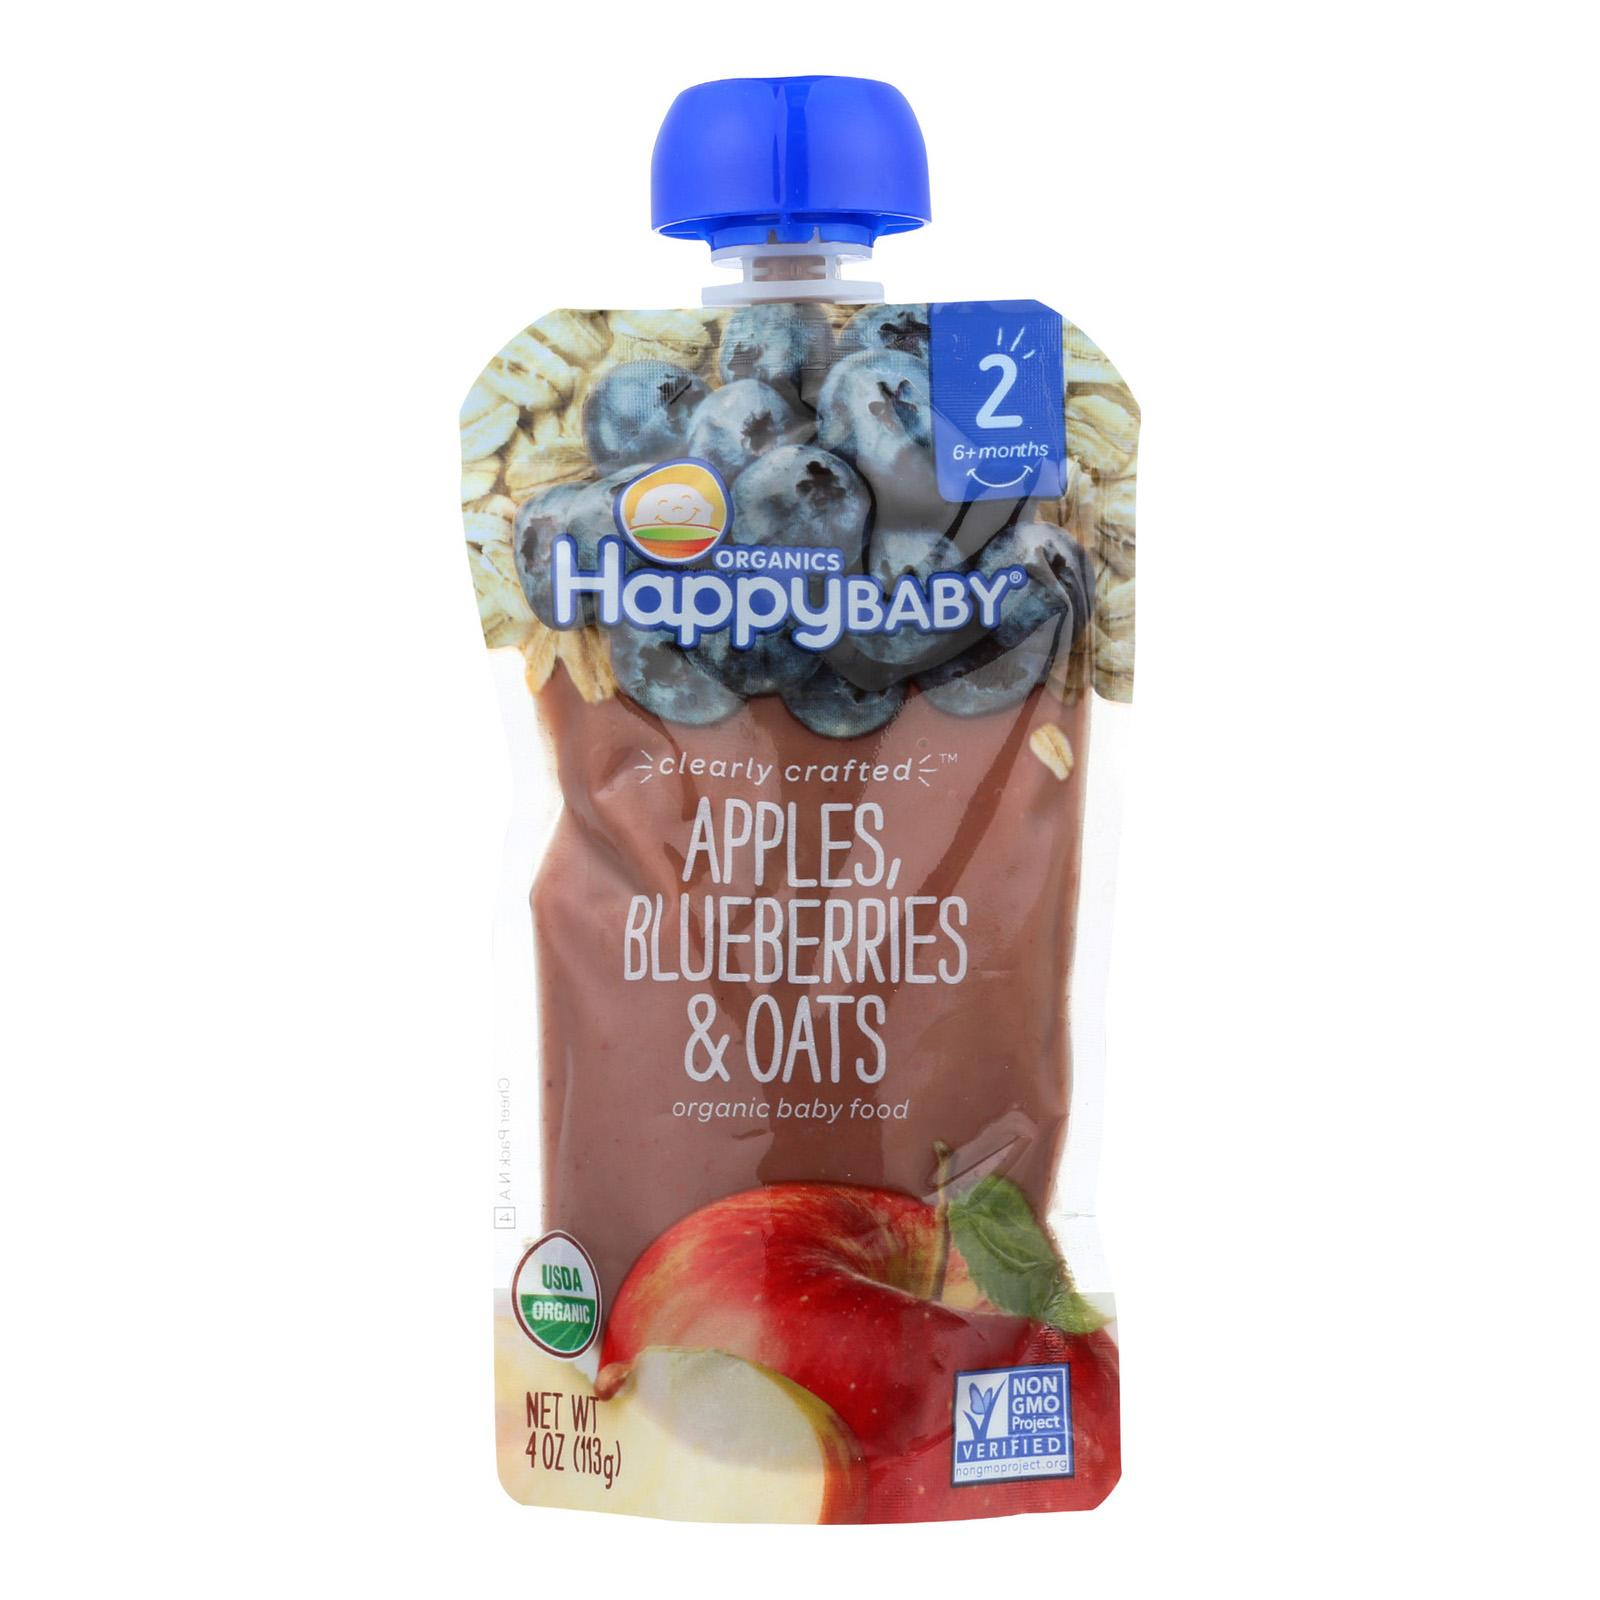 Happy Baby® Organics Apples, Blueberries & Oats Baby Food 4 oz. Pouch